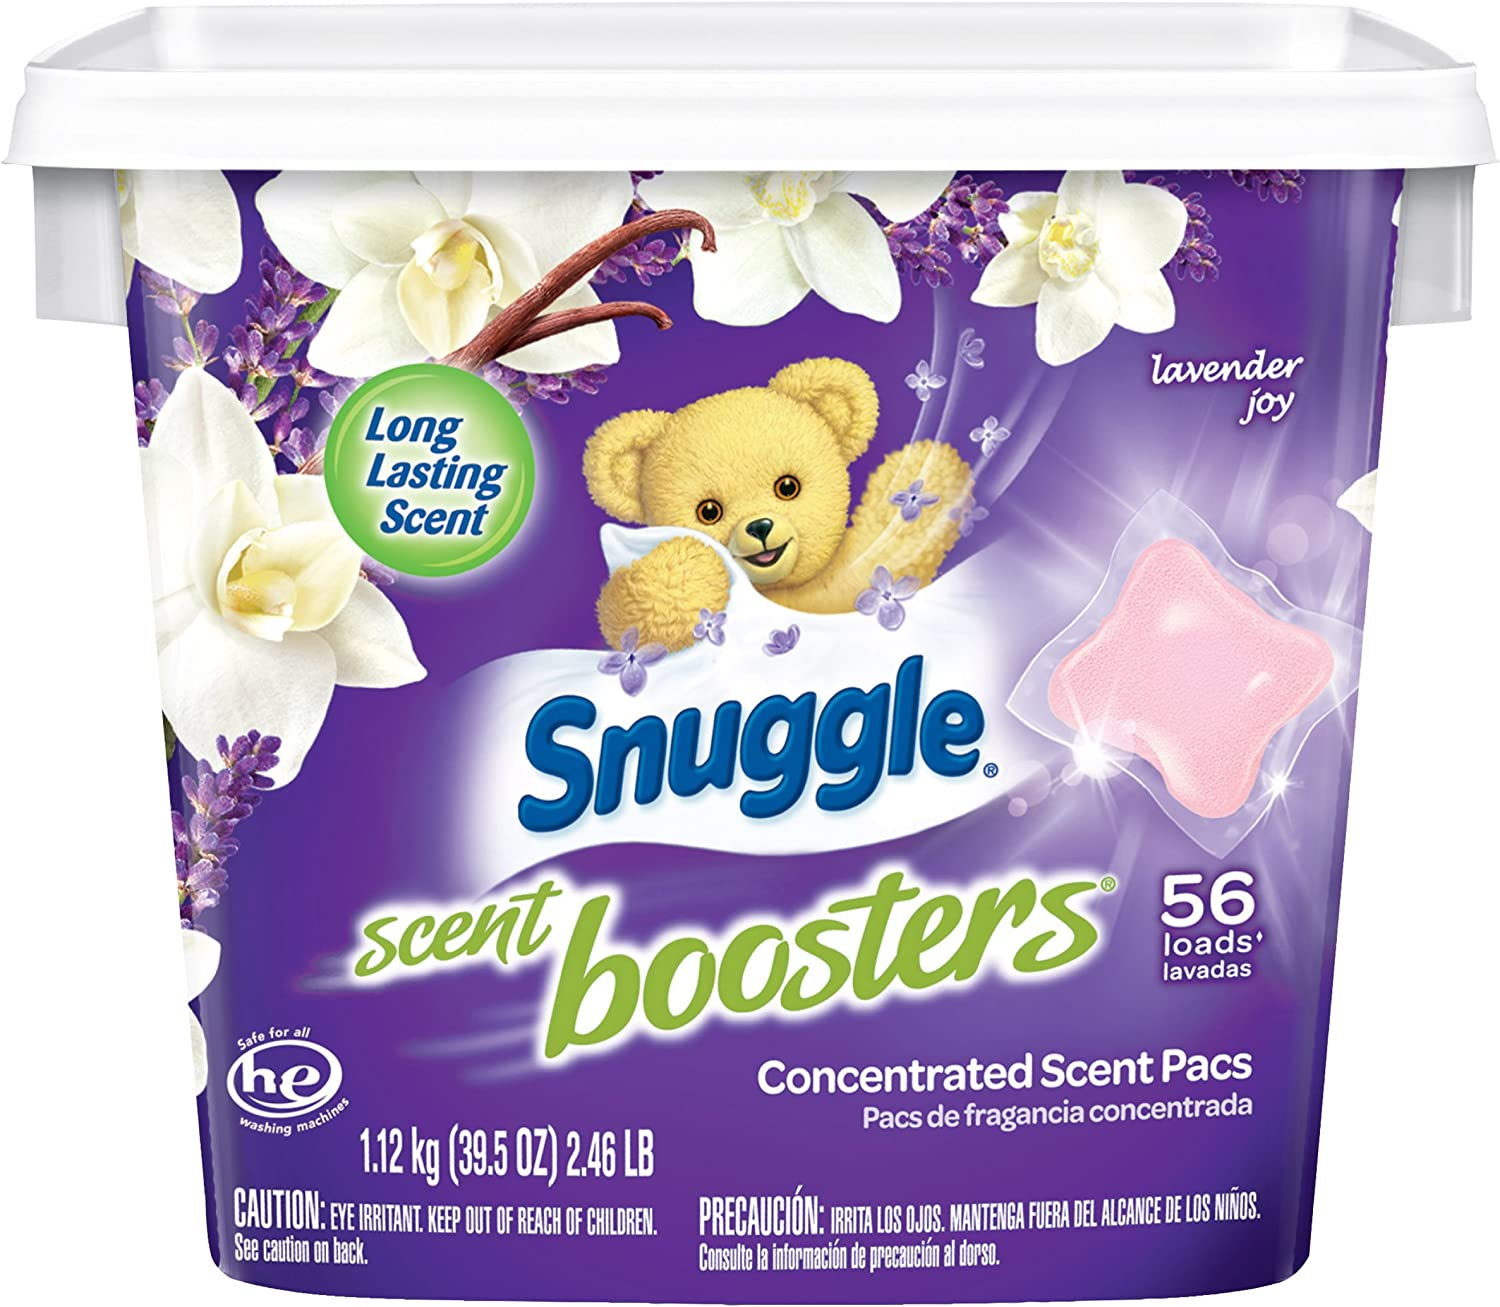 Snuggle Laundry Scent Boosters Concentrated Scent Pacs, Lavender Joy, Tub, 56 Count